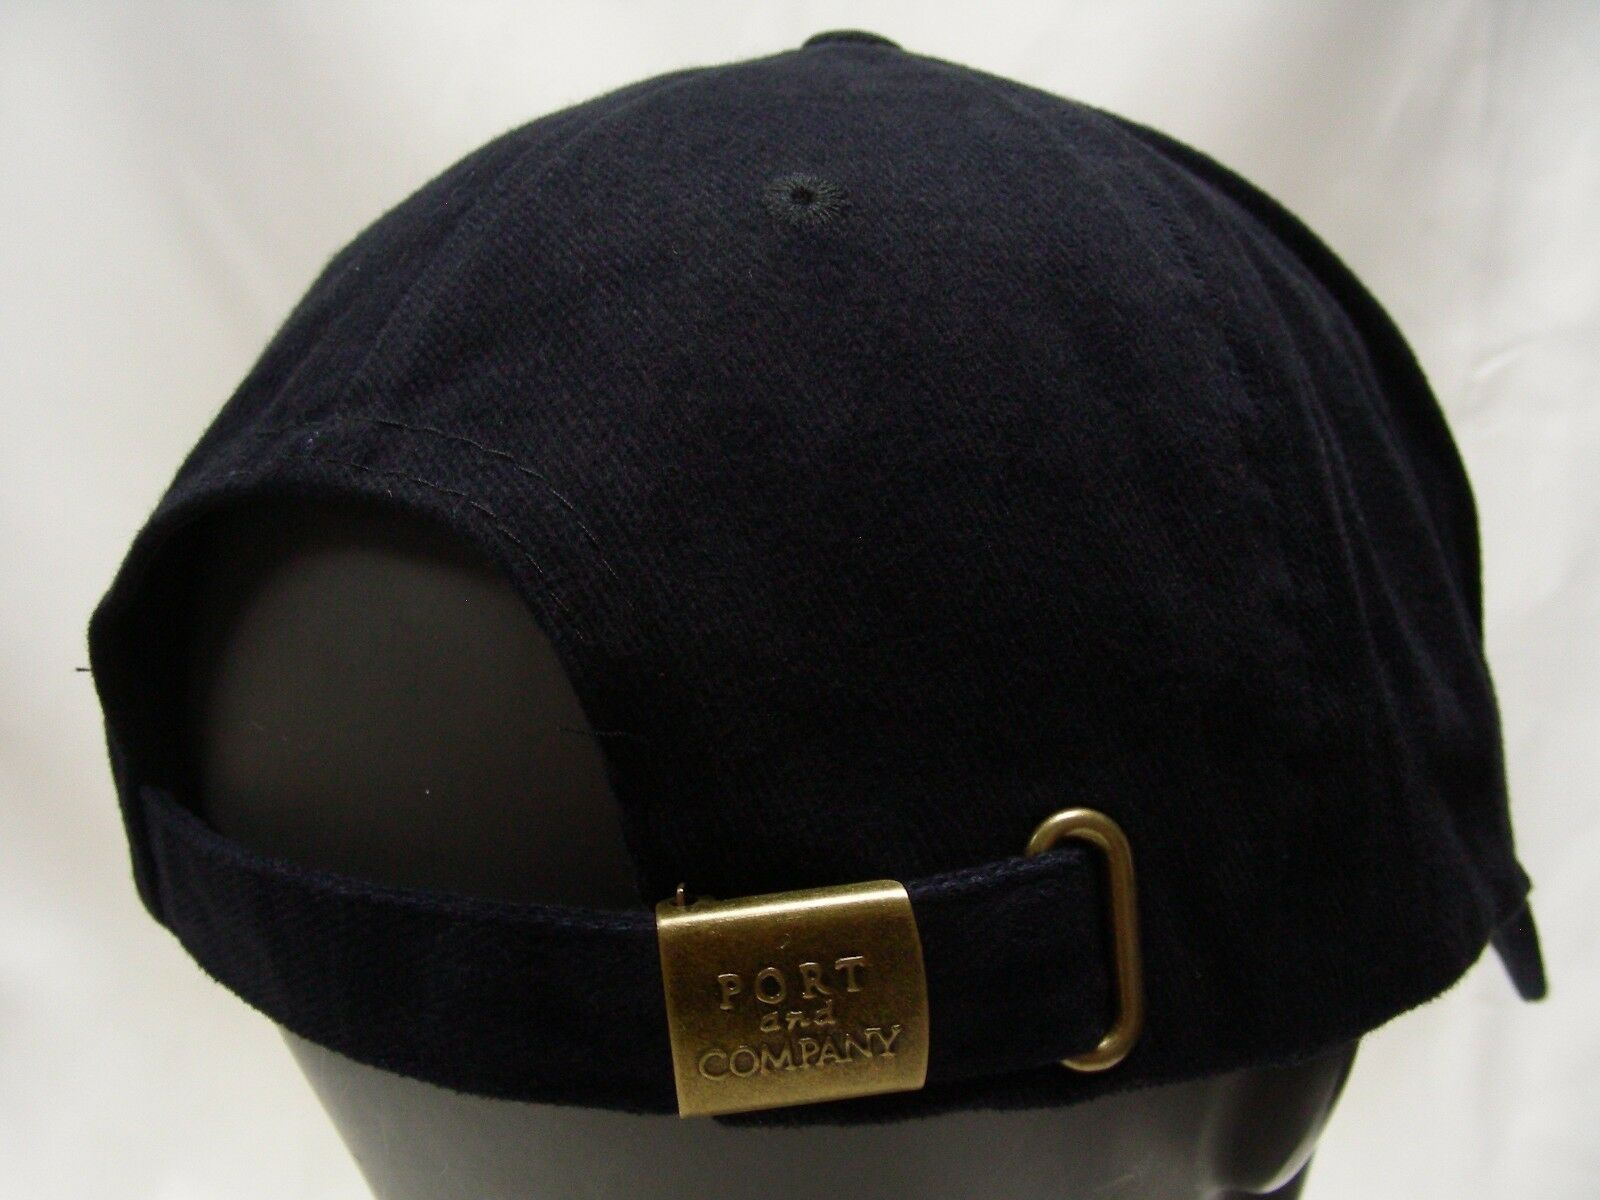 SENSUS - PORT & COMPANY - ADJUSTABLE STRAPBACK BALL CAP HAT HAT CAP 3e258c